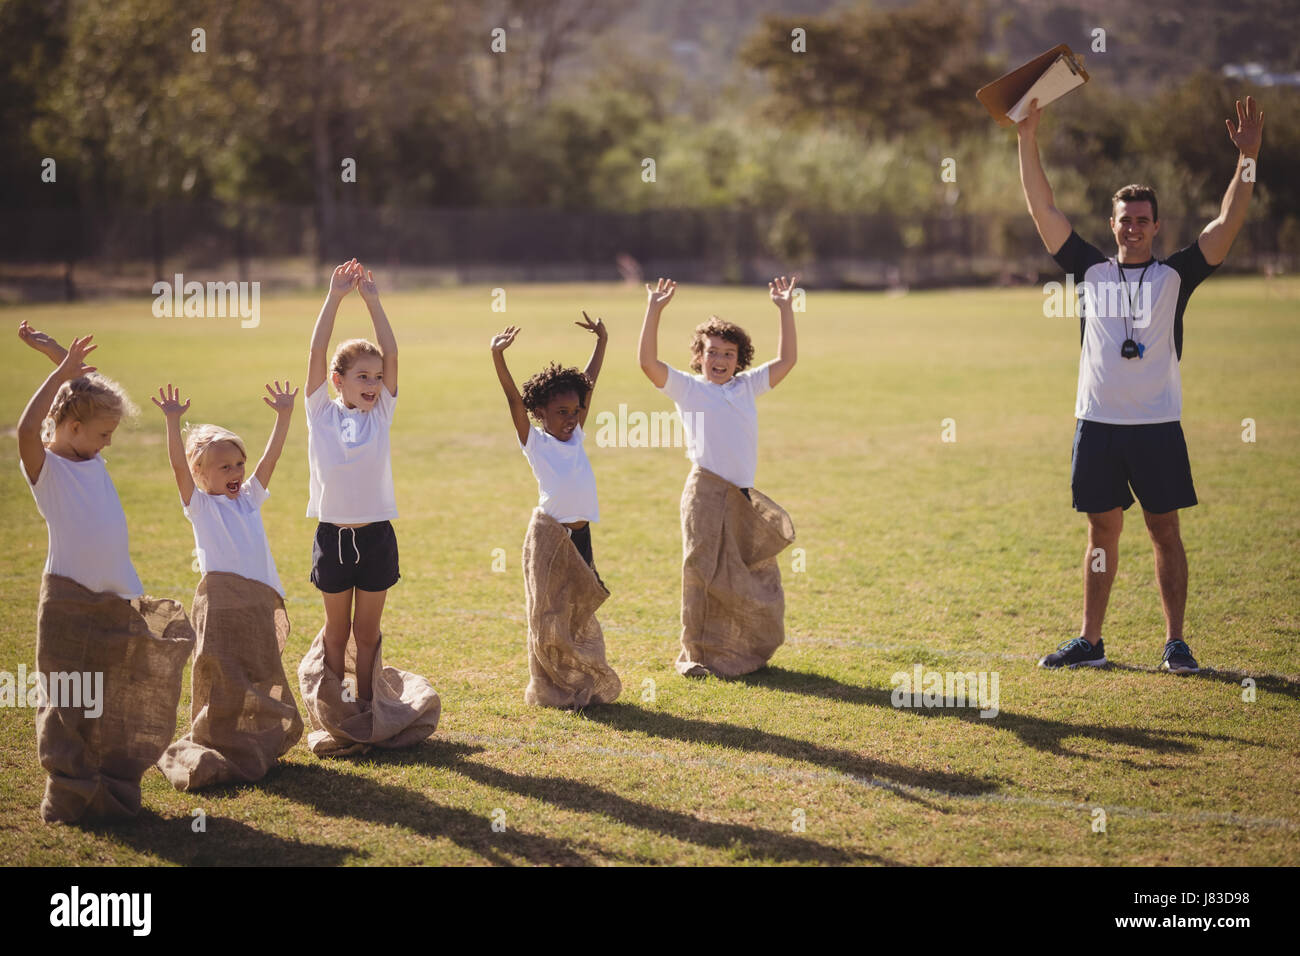 Coach and schoolgirls enjoying in park during sack race on a sunny day - Stock Image